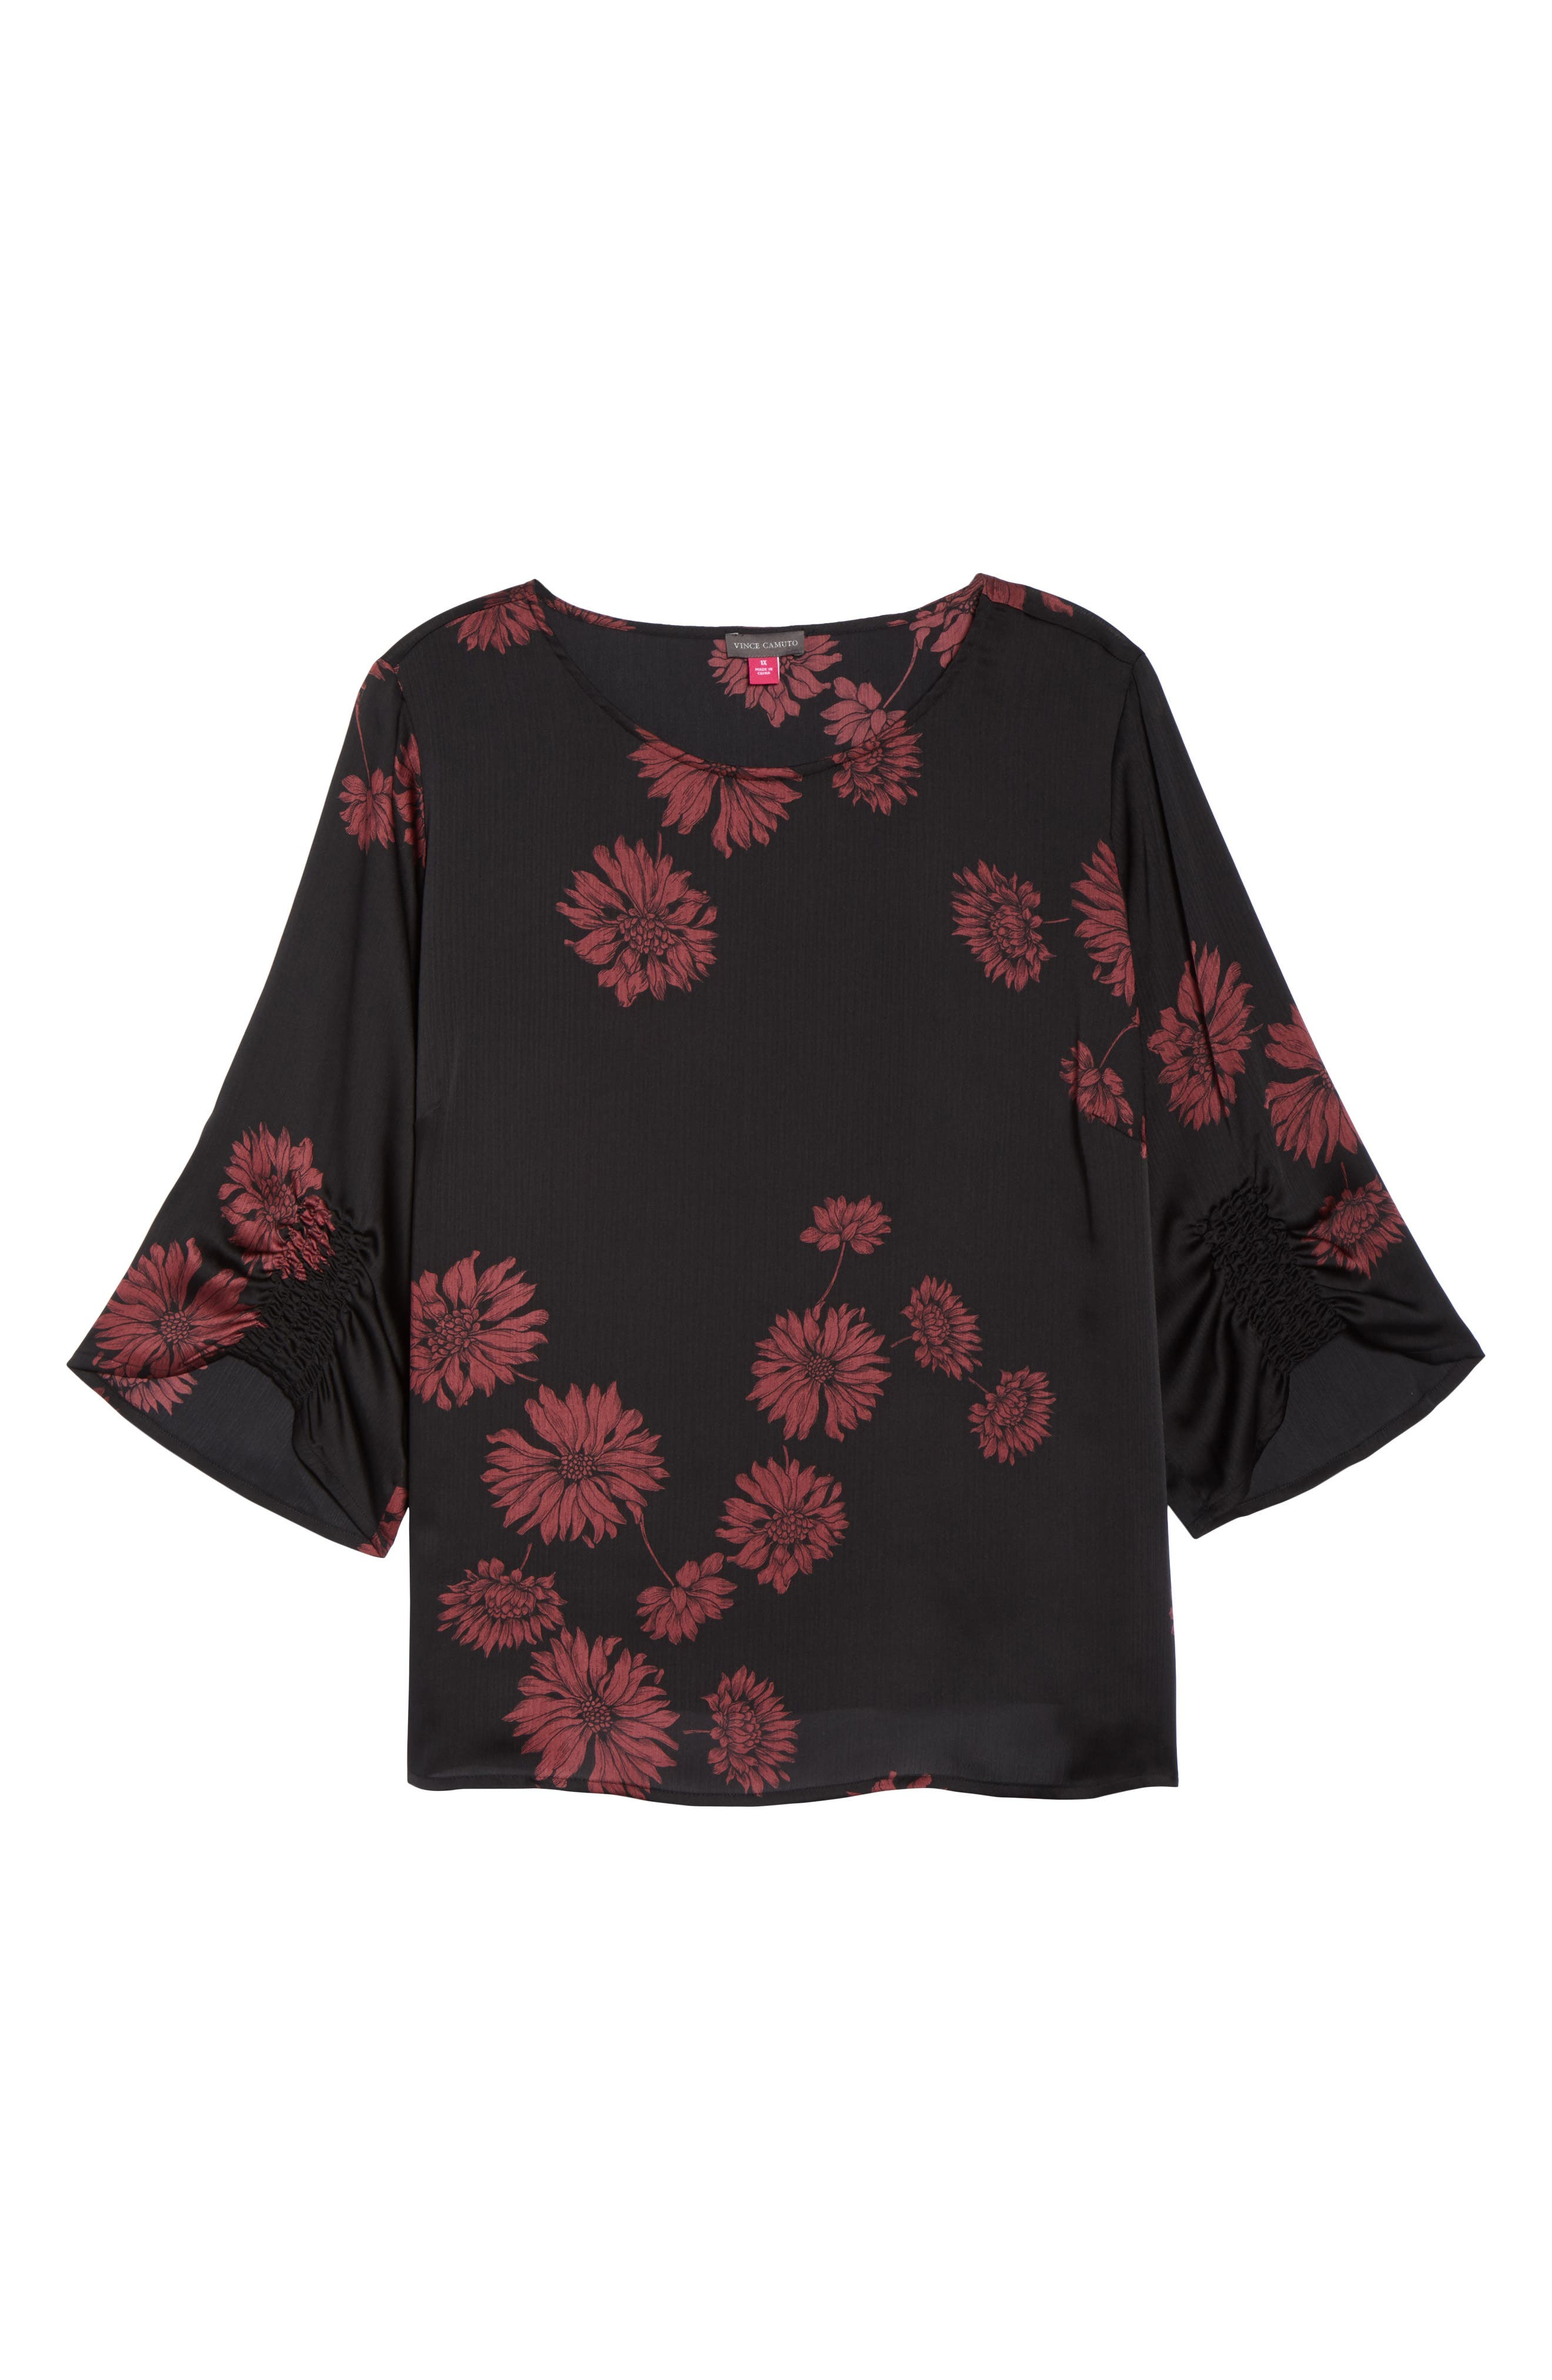 Chateau Floral Print Top,                             Alternate thumbnail 6, color,                             Rich Black